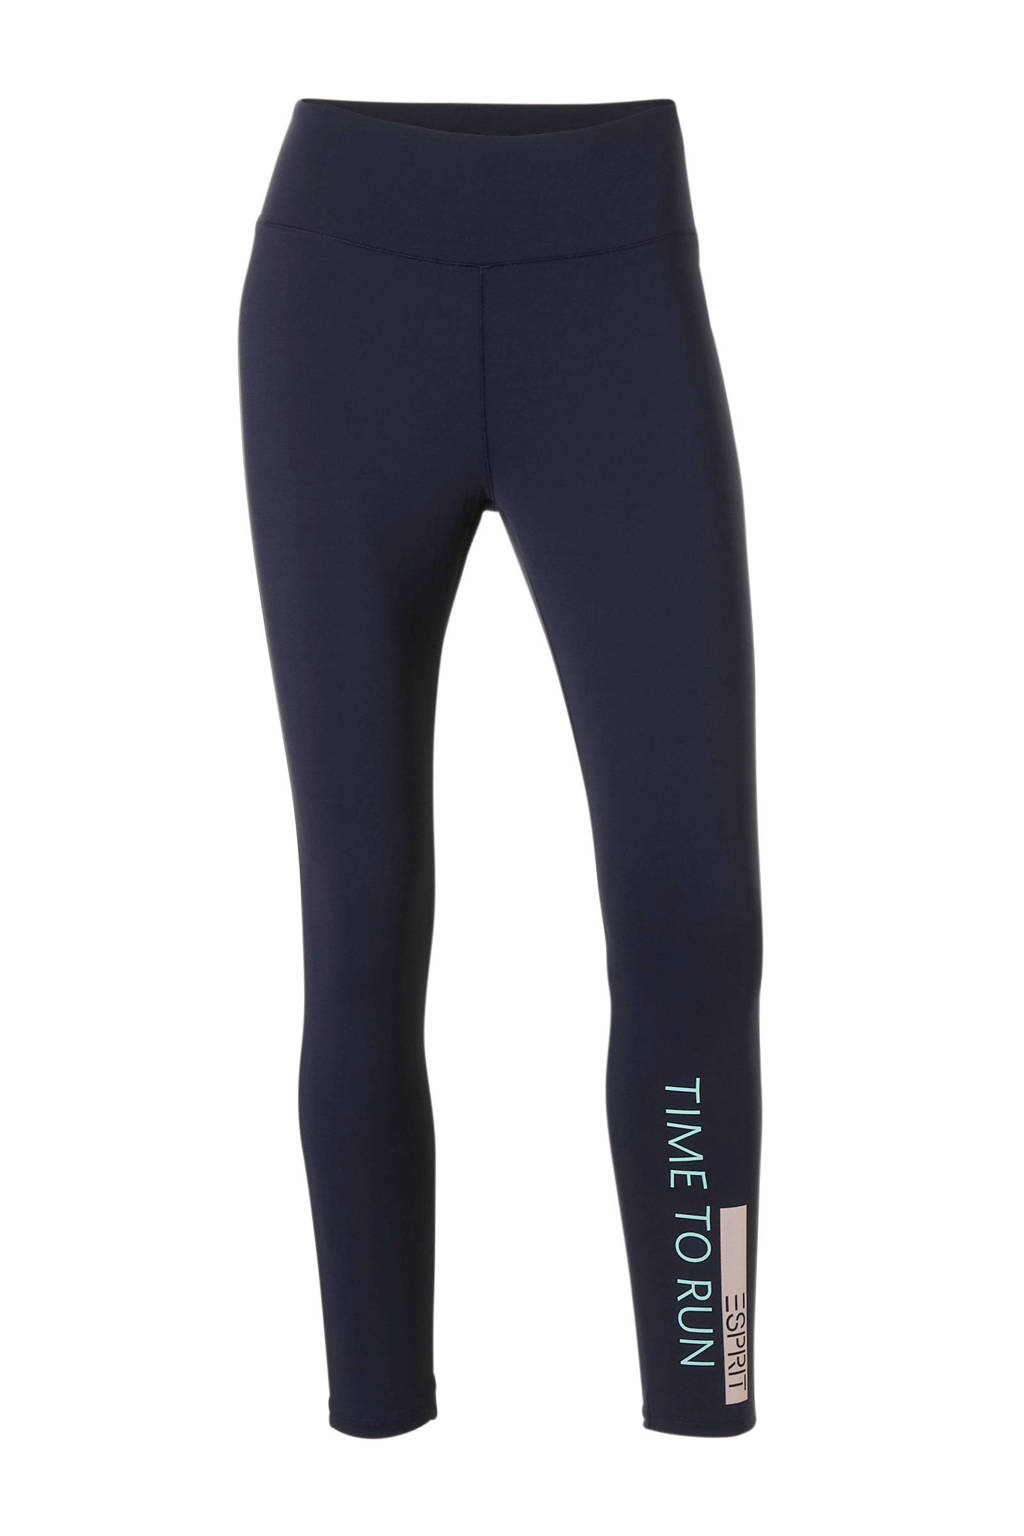 ESPRIT Women Sports sportbroek, Donkerblauw